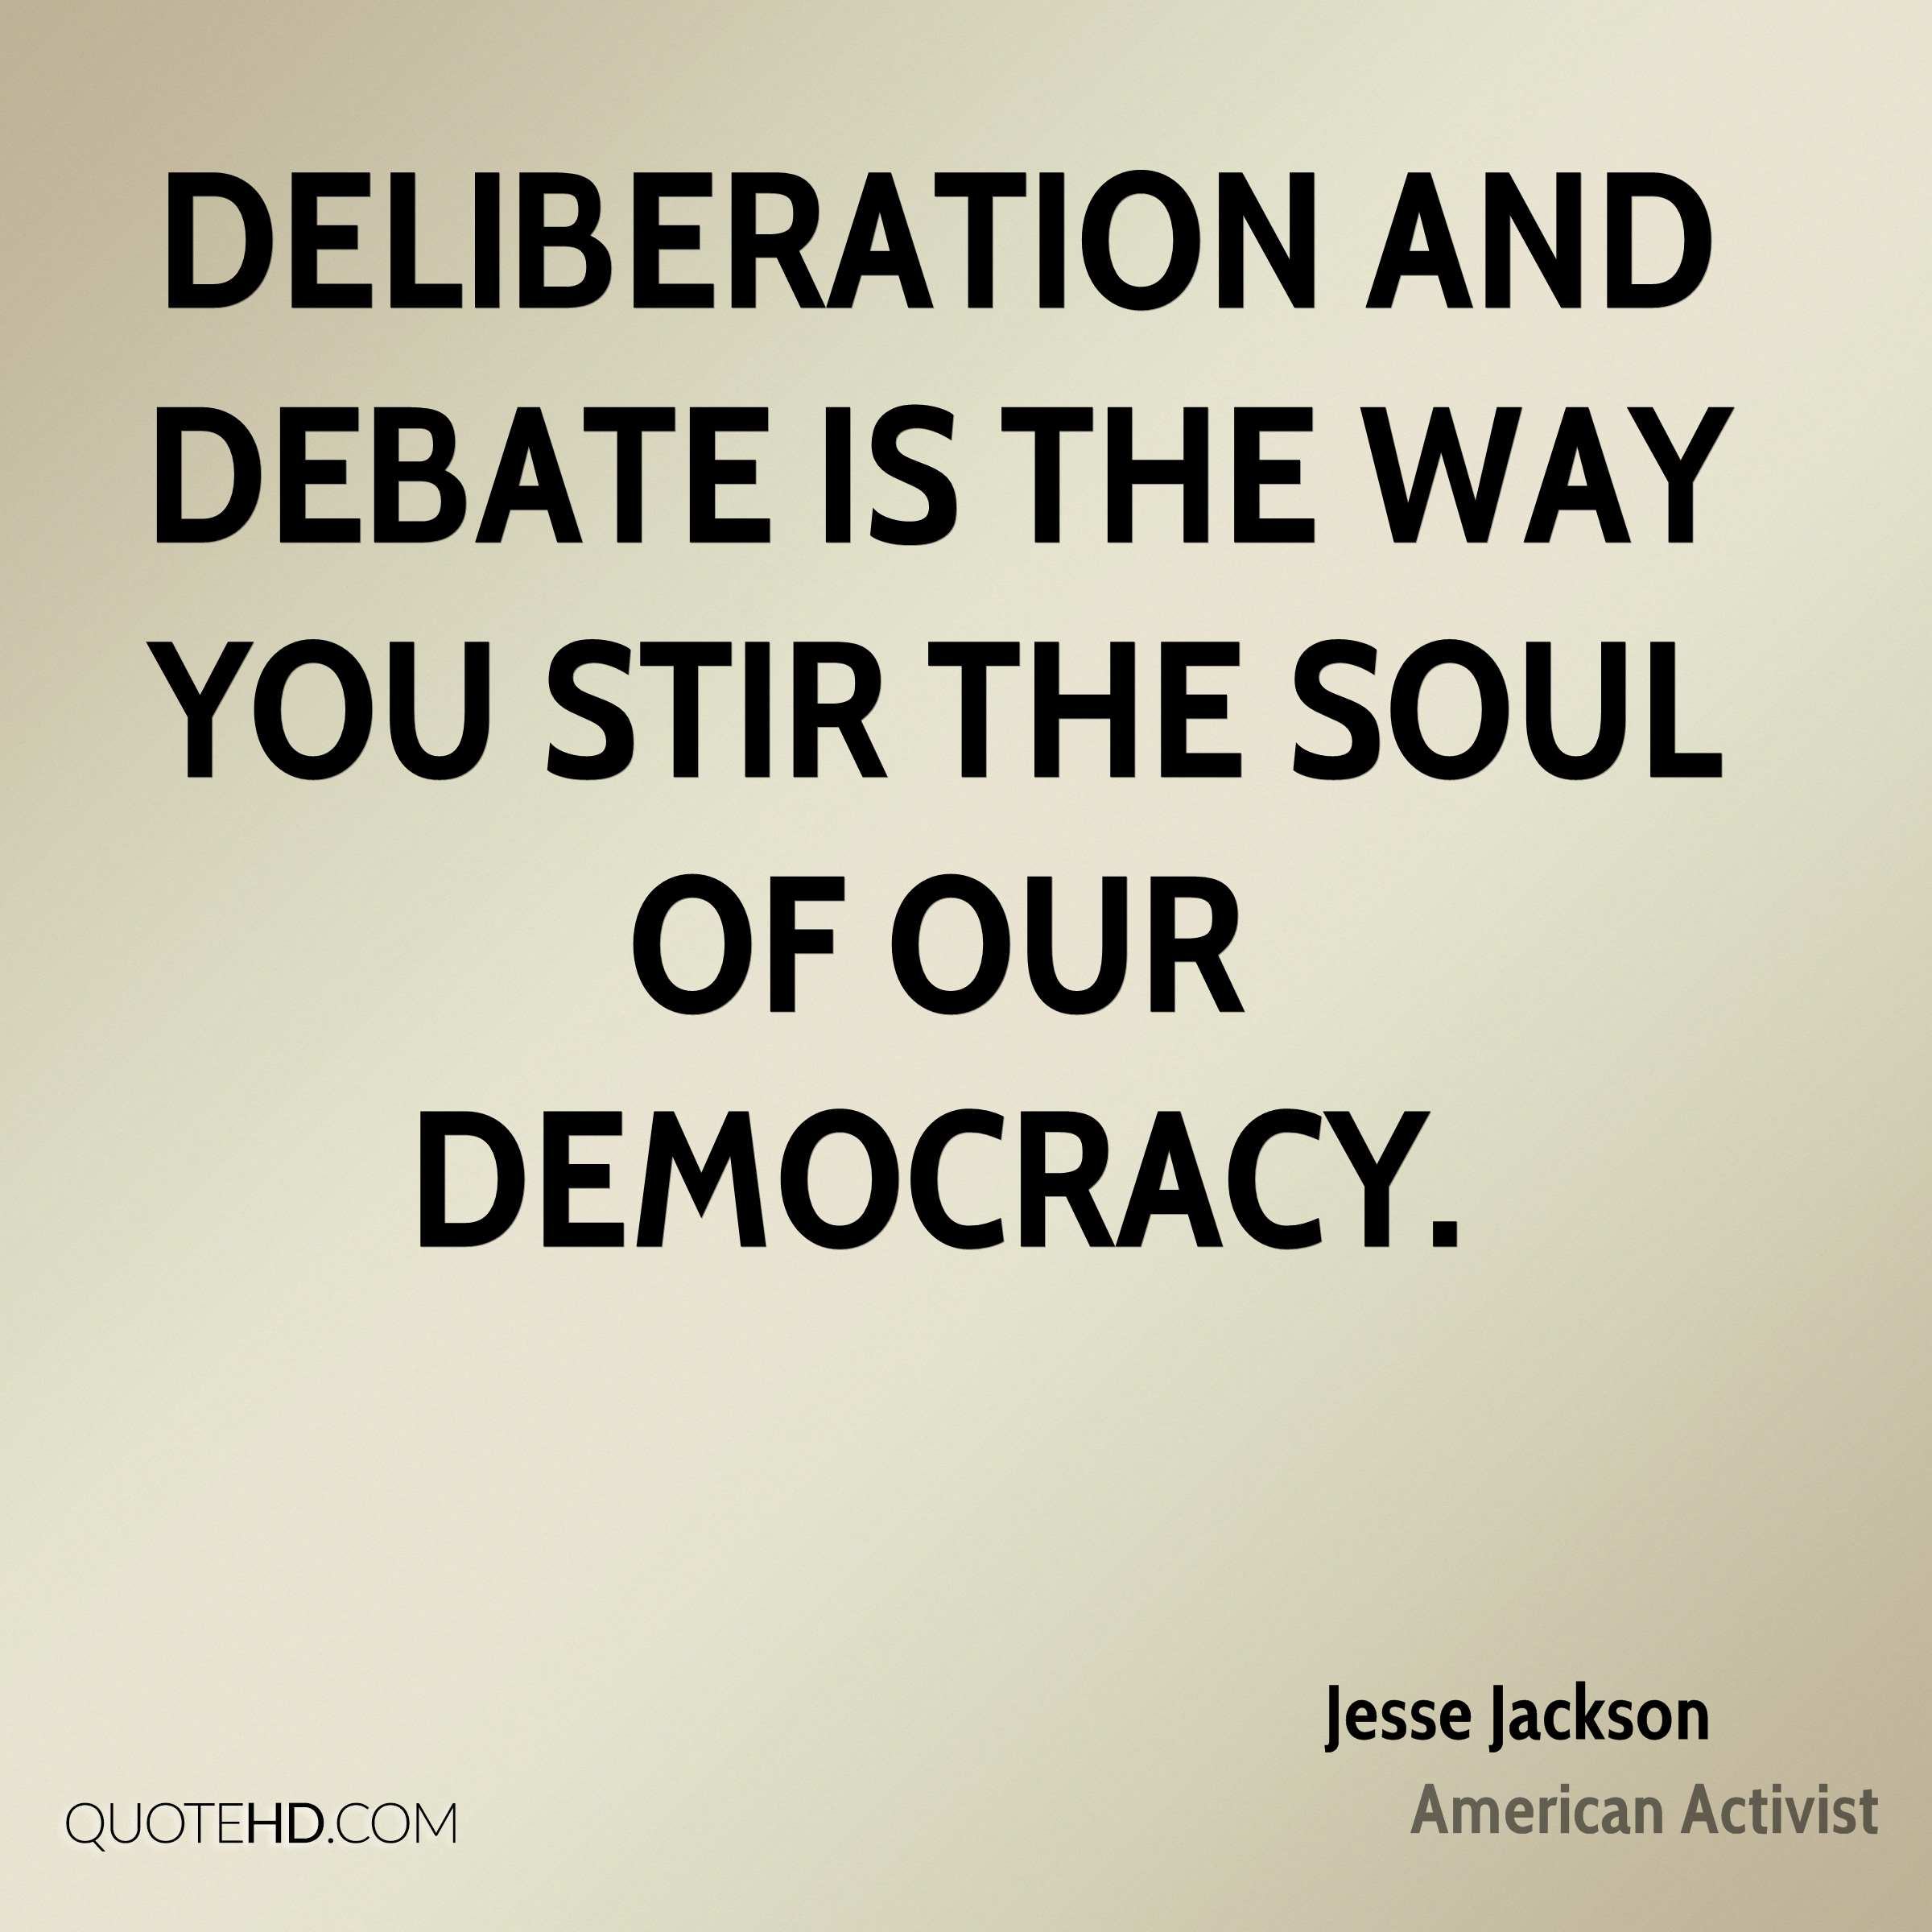 Deliberation and debate is the way you stir the soul of our democracy.